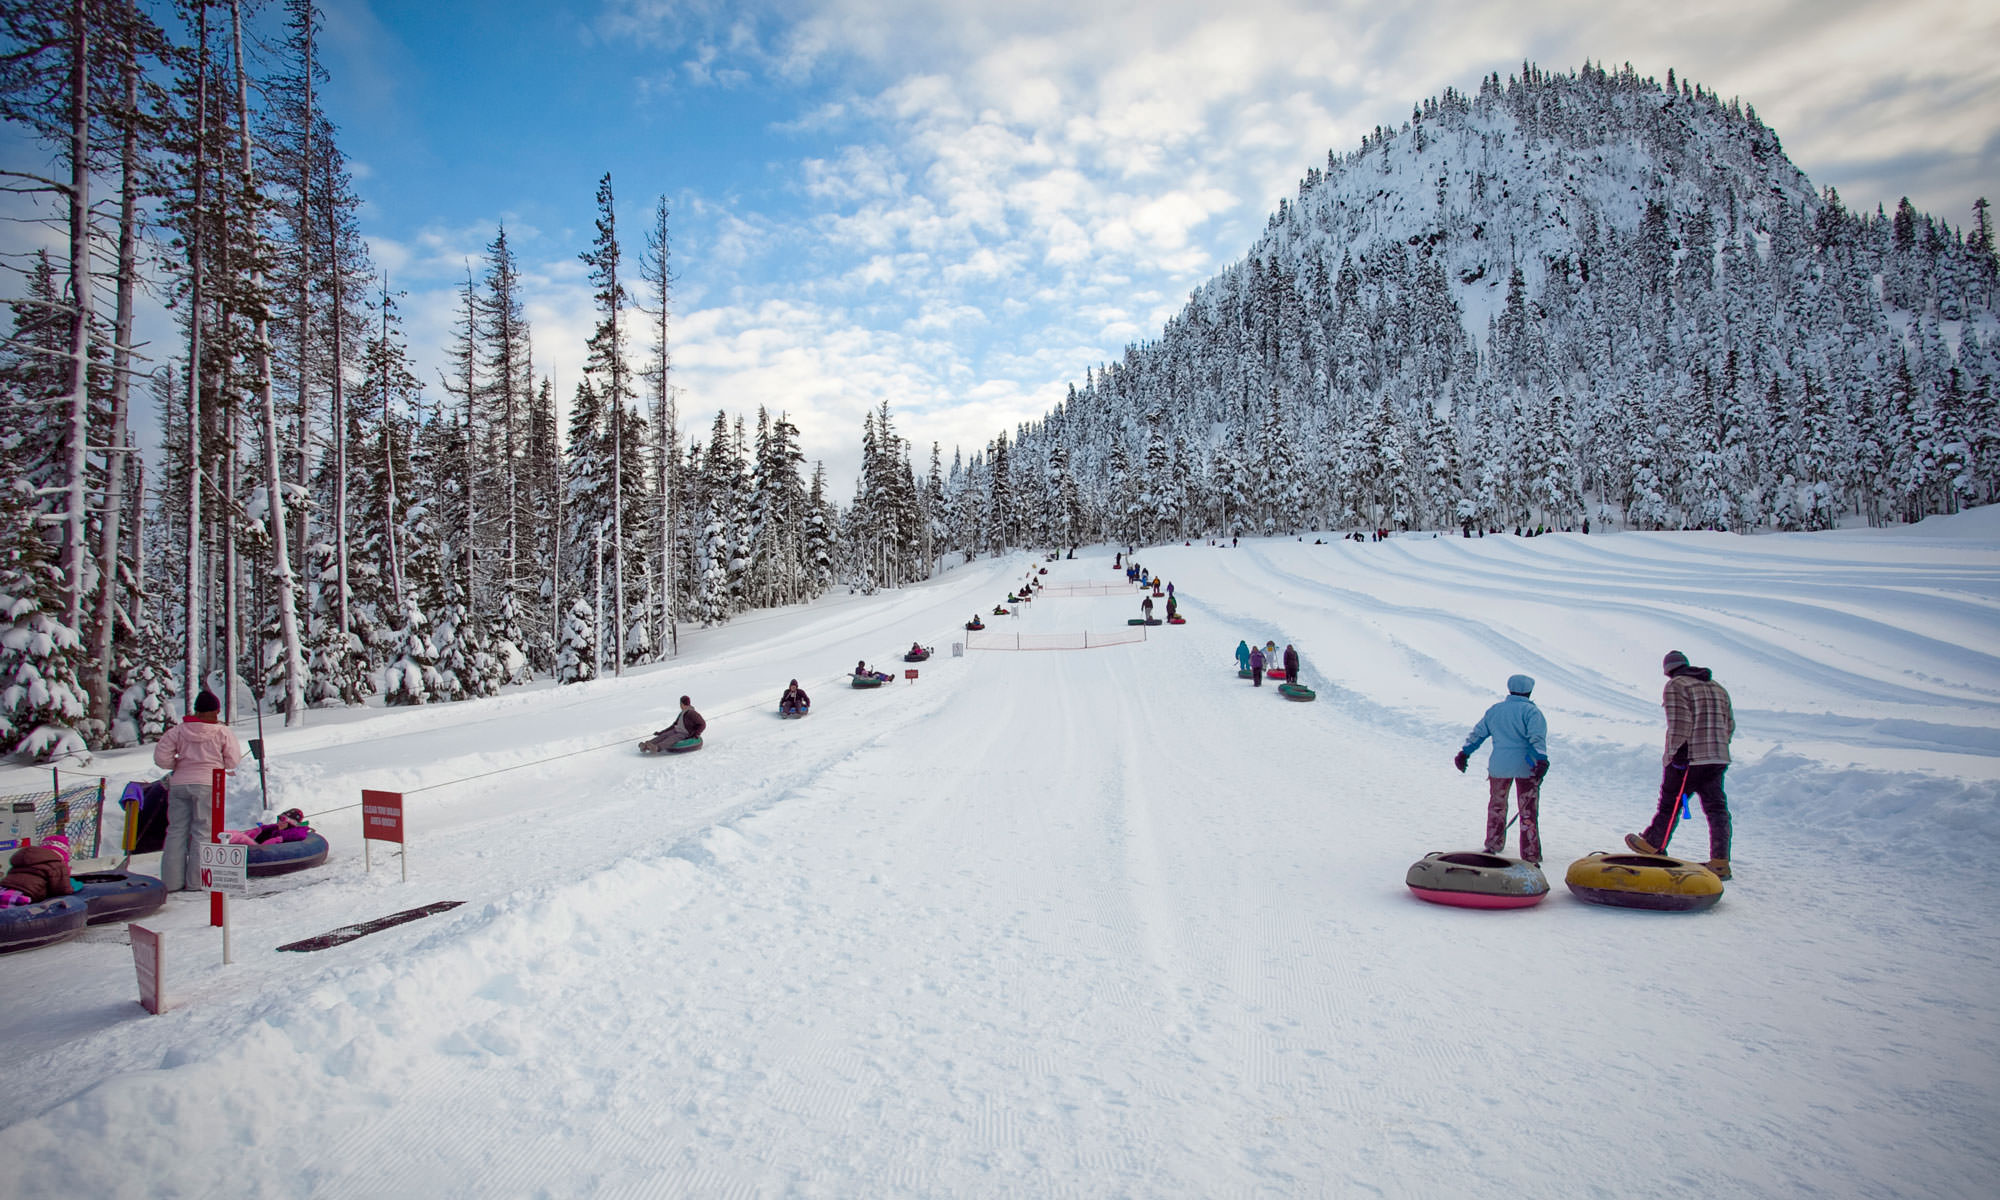 Tubers line up to slide down the snowy hill on a blue-sky day at Hoodoo Ski Area.